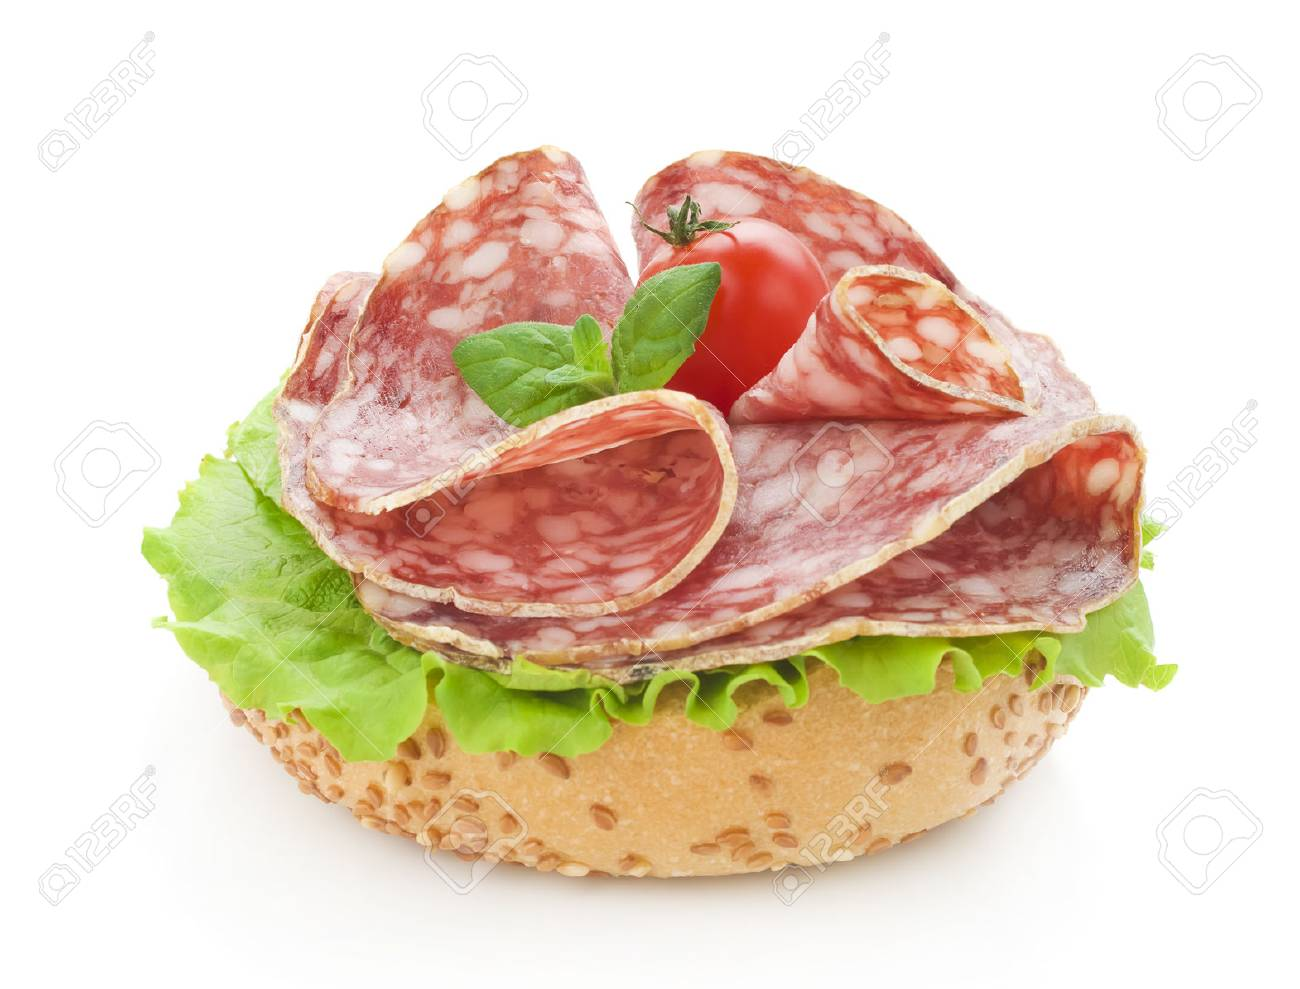 salami and lettuce - 25201472